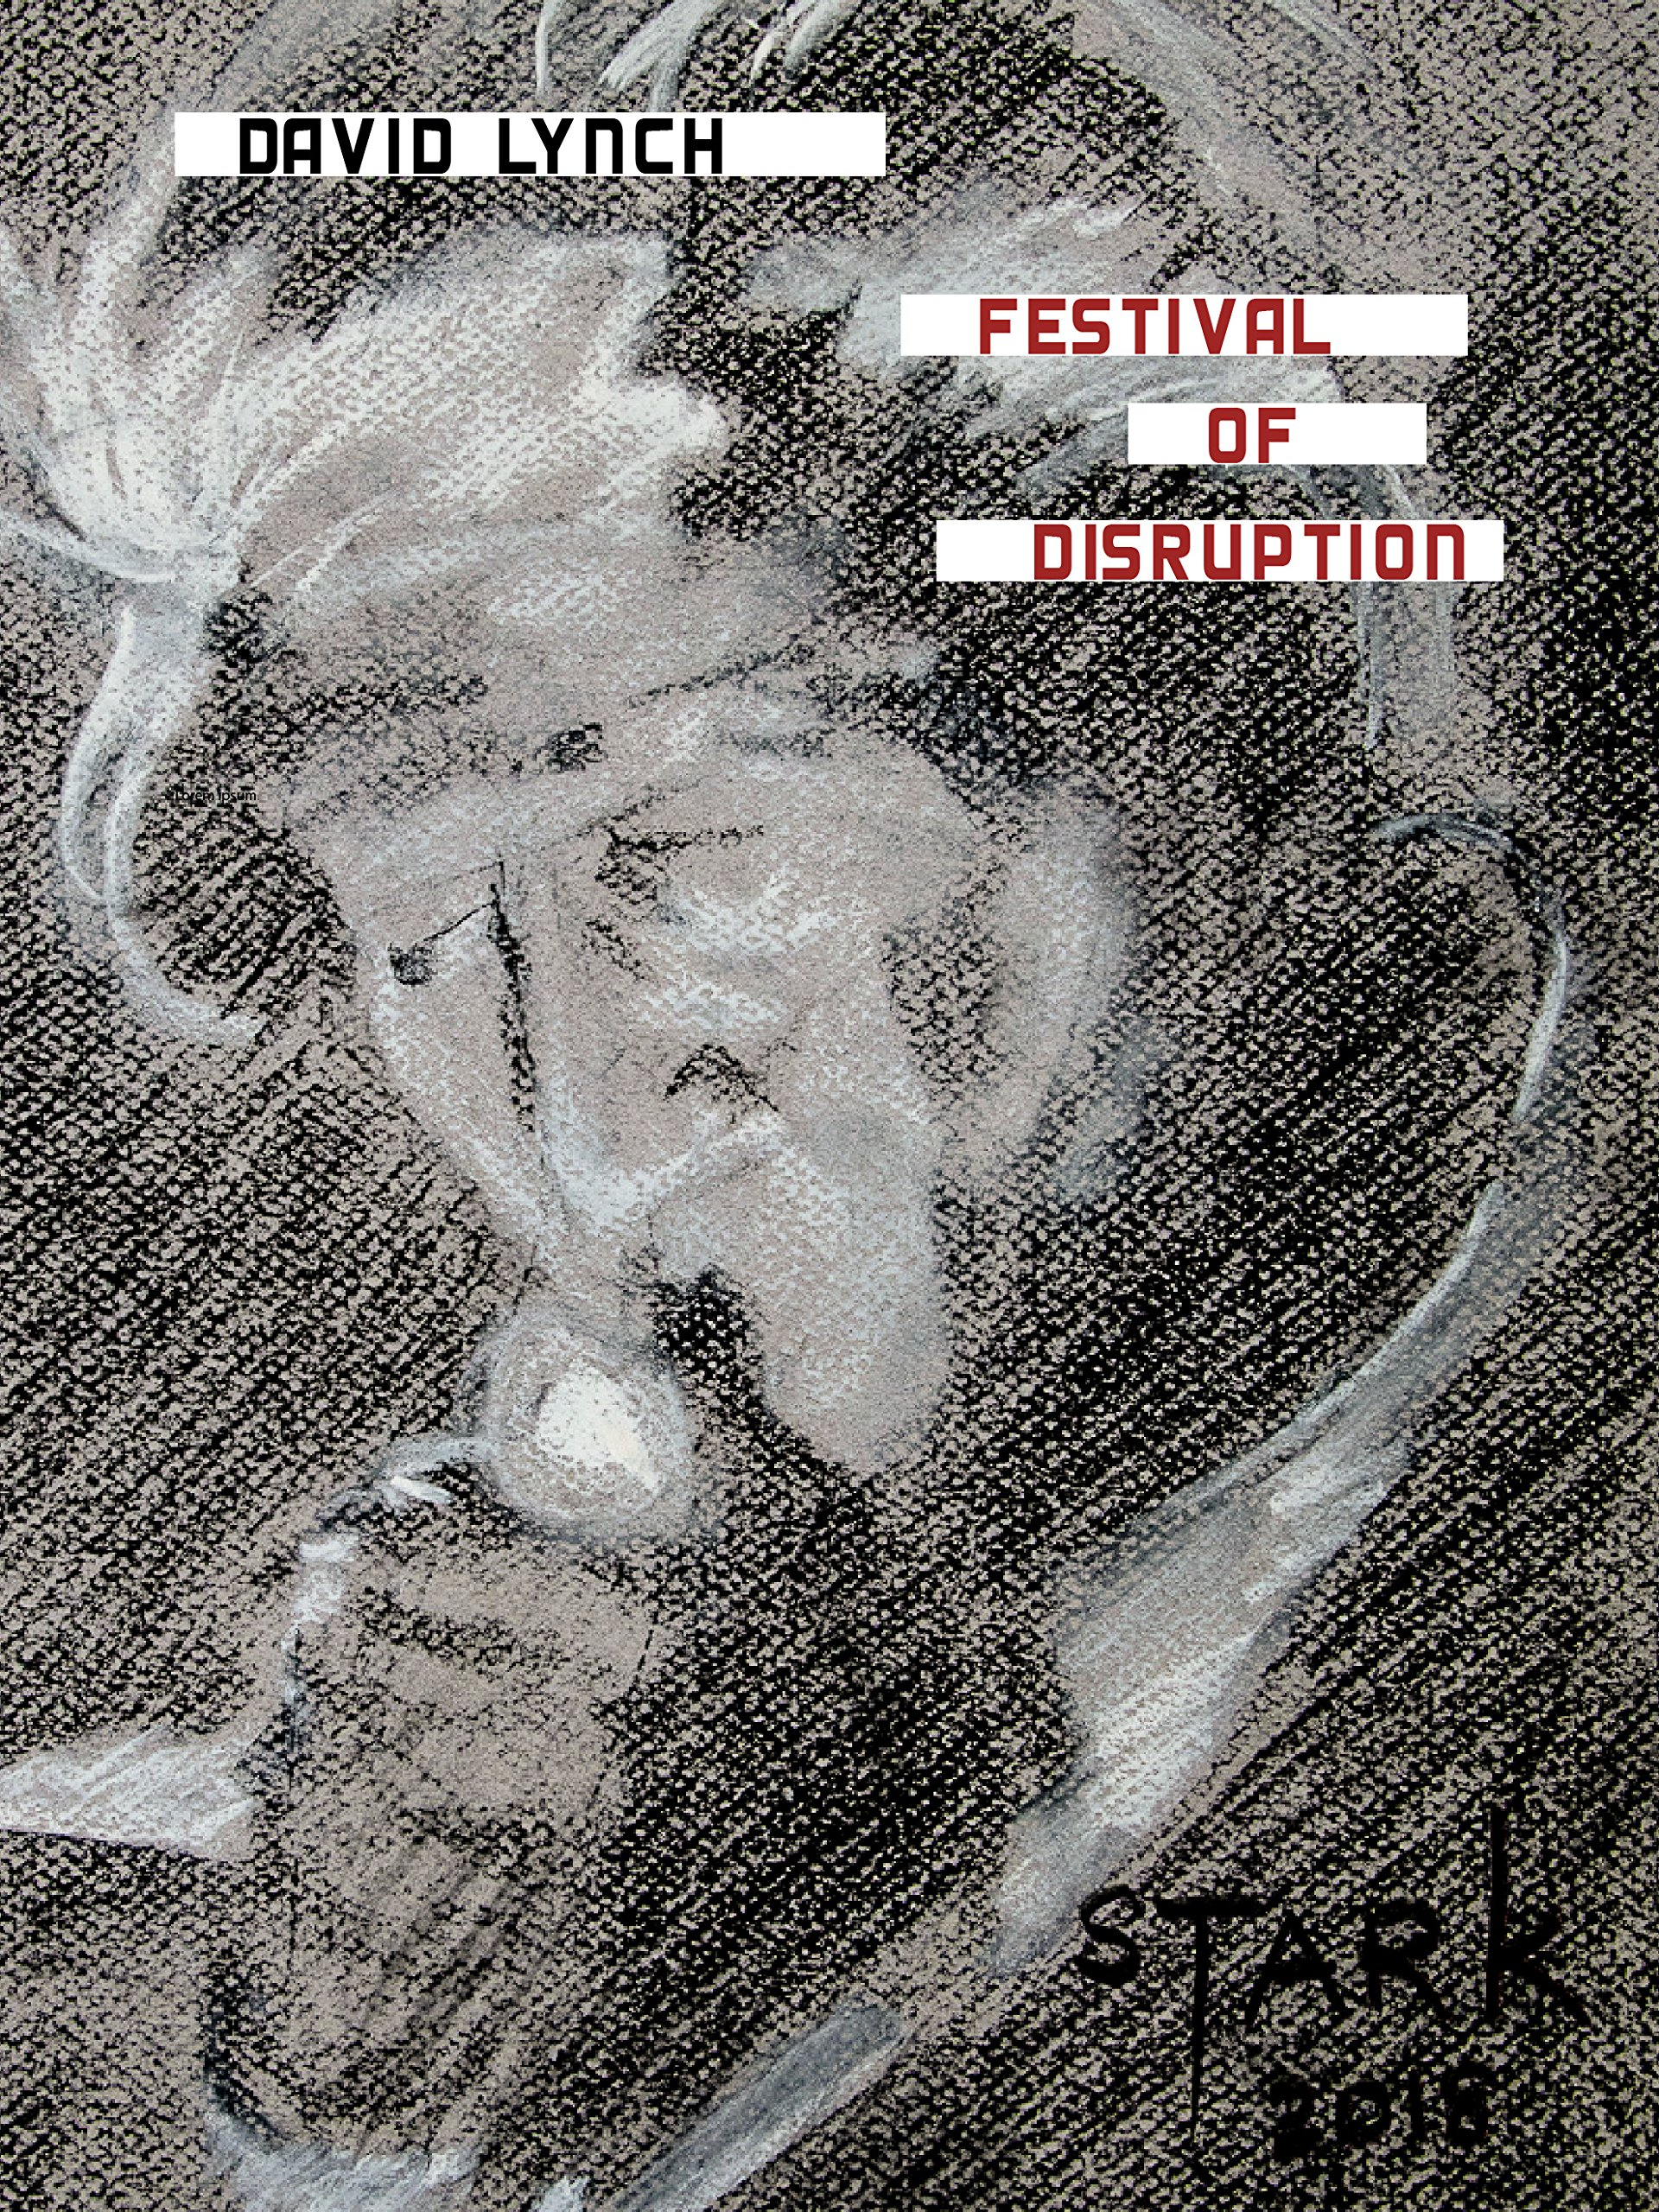 David Lynch - Festival of Disruption